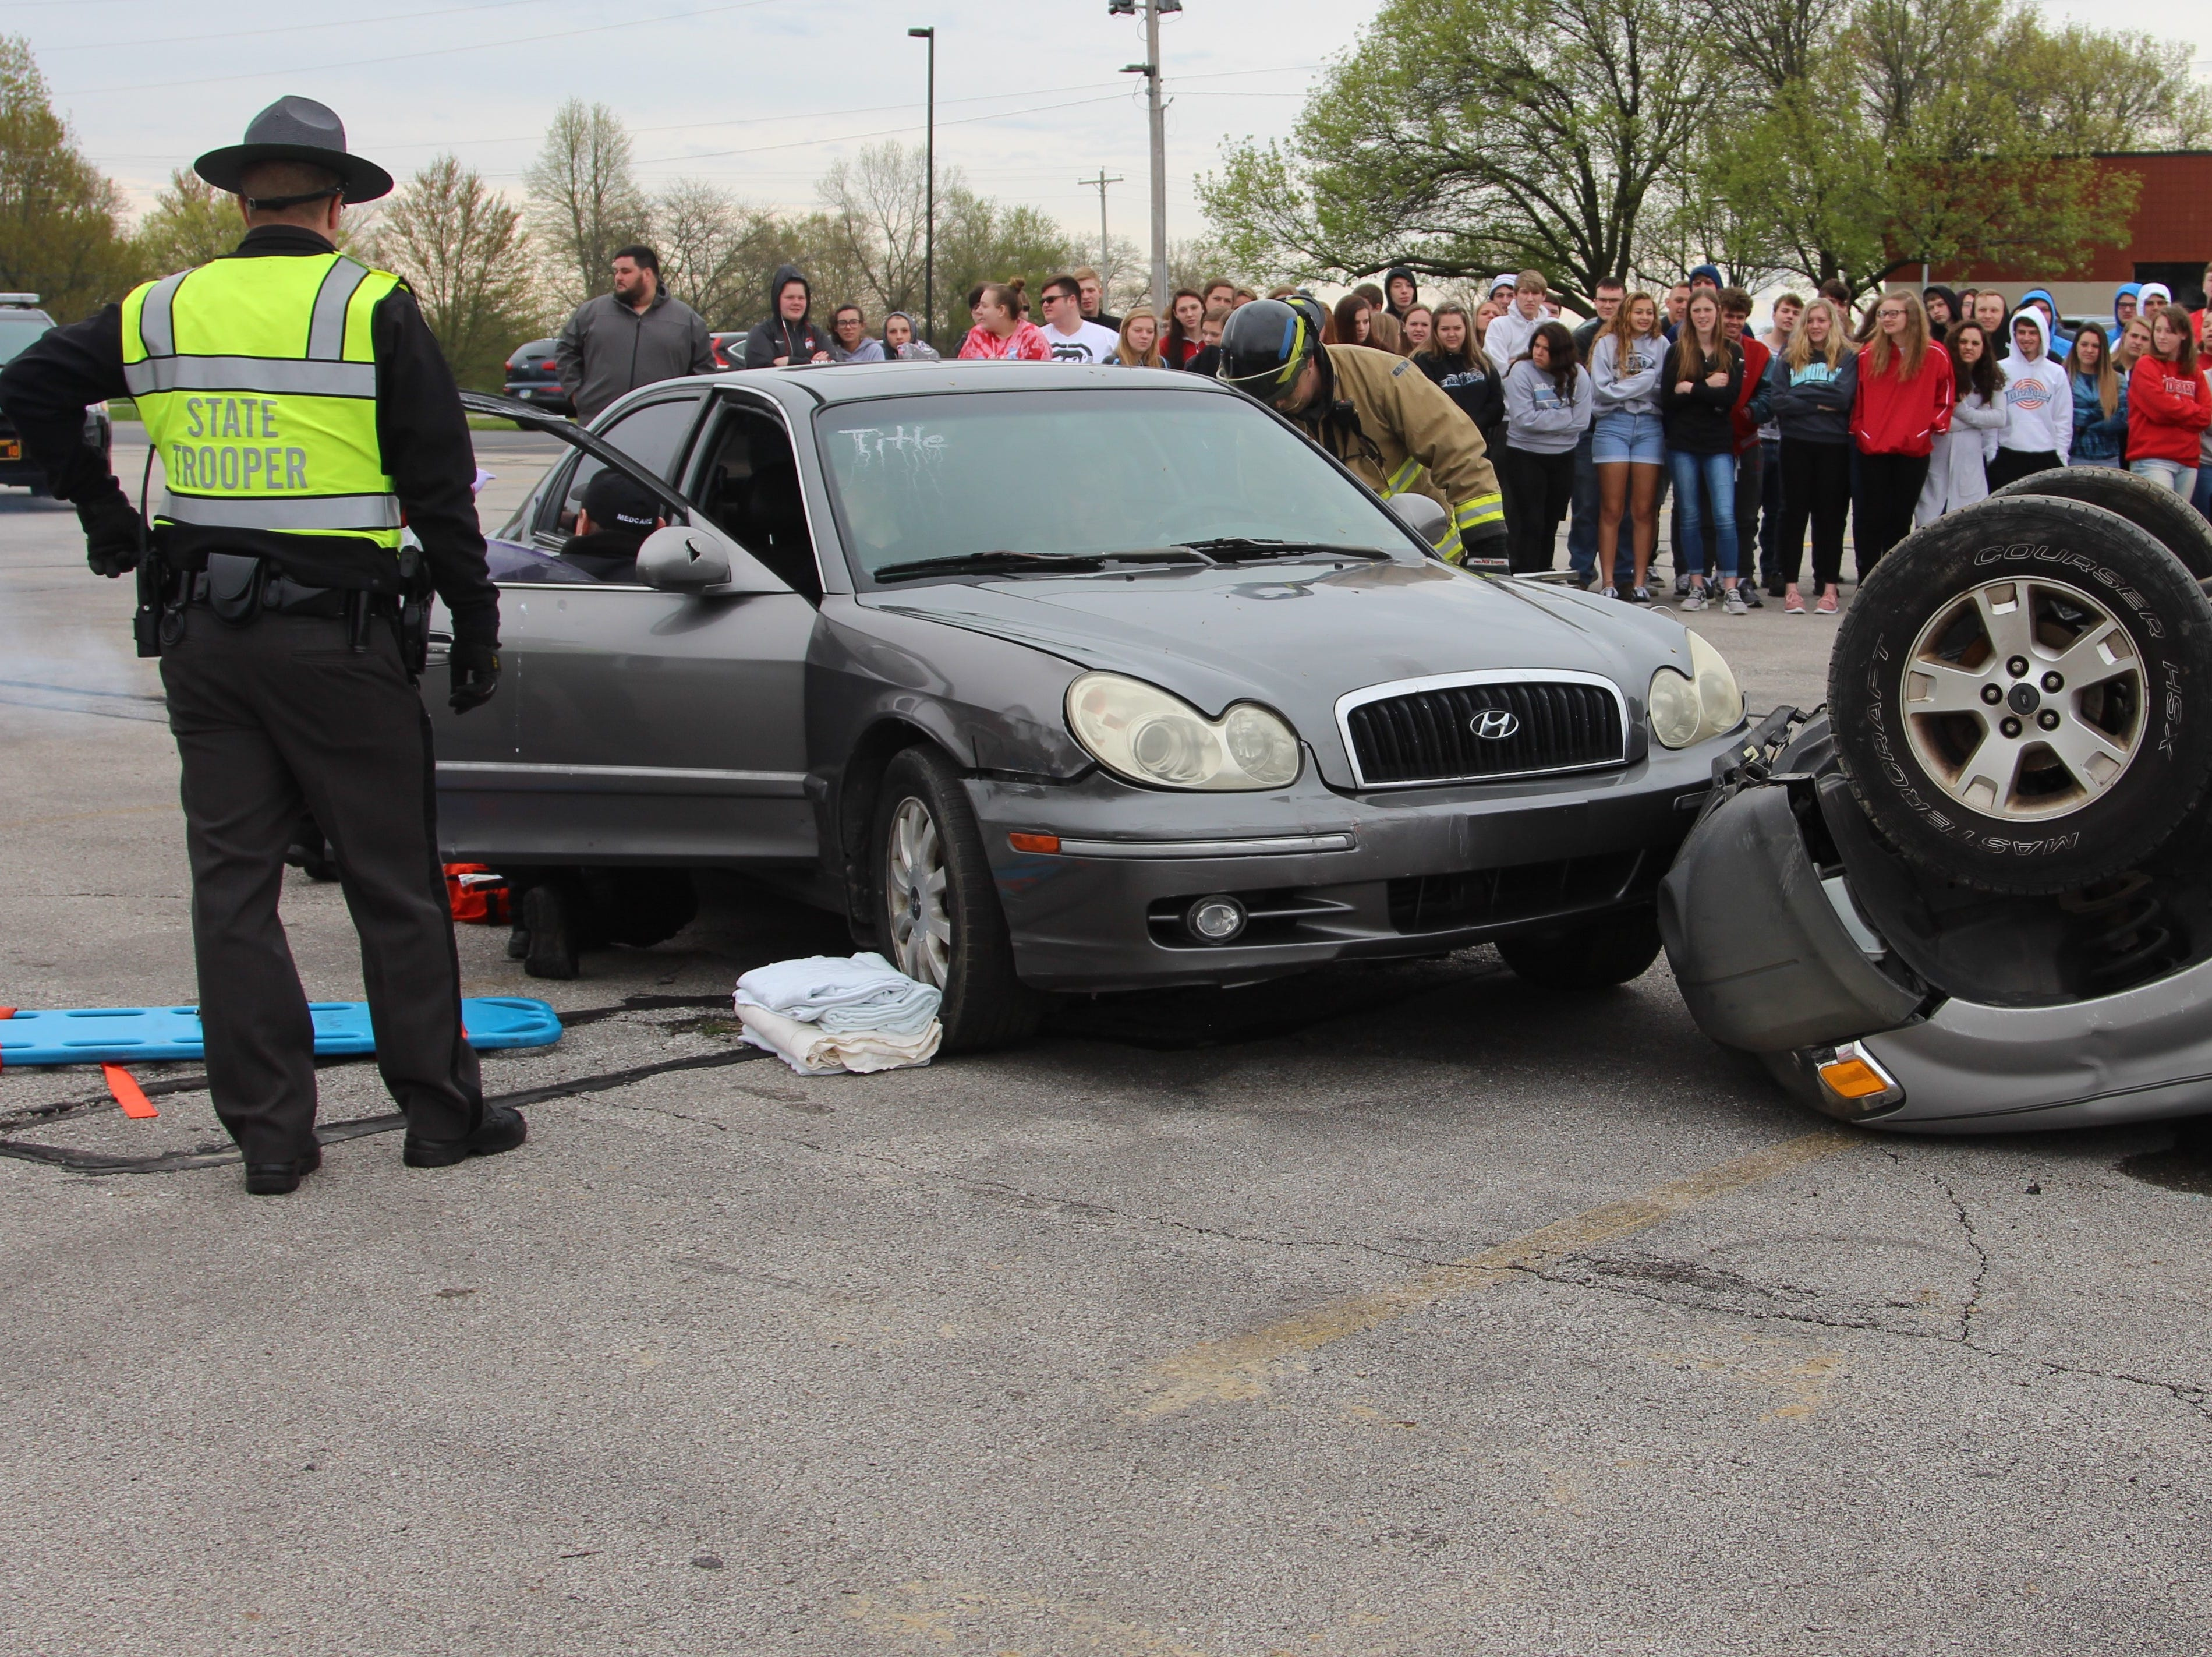 Members of the Salt Rock Fire Department, Survival Flight, the Ohio Highway Patrol and the Marion County Sheriff's Office took part in a mock crash at Ridgedale Jr./Sr. High School Monday morning.